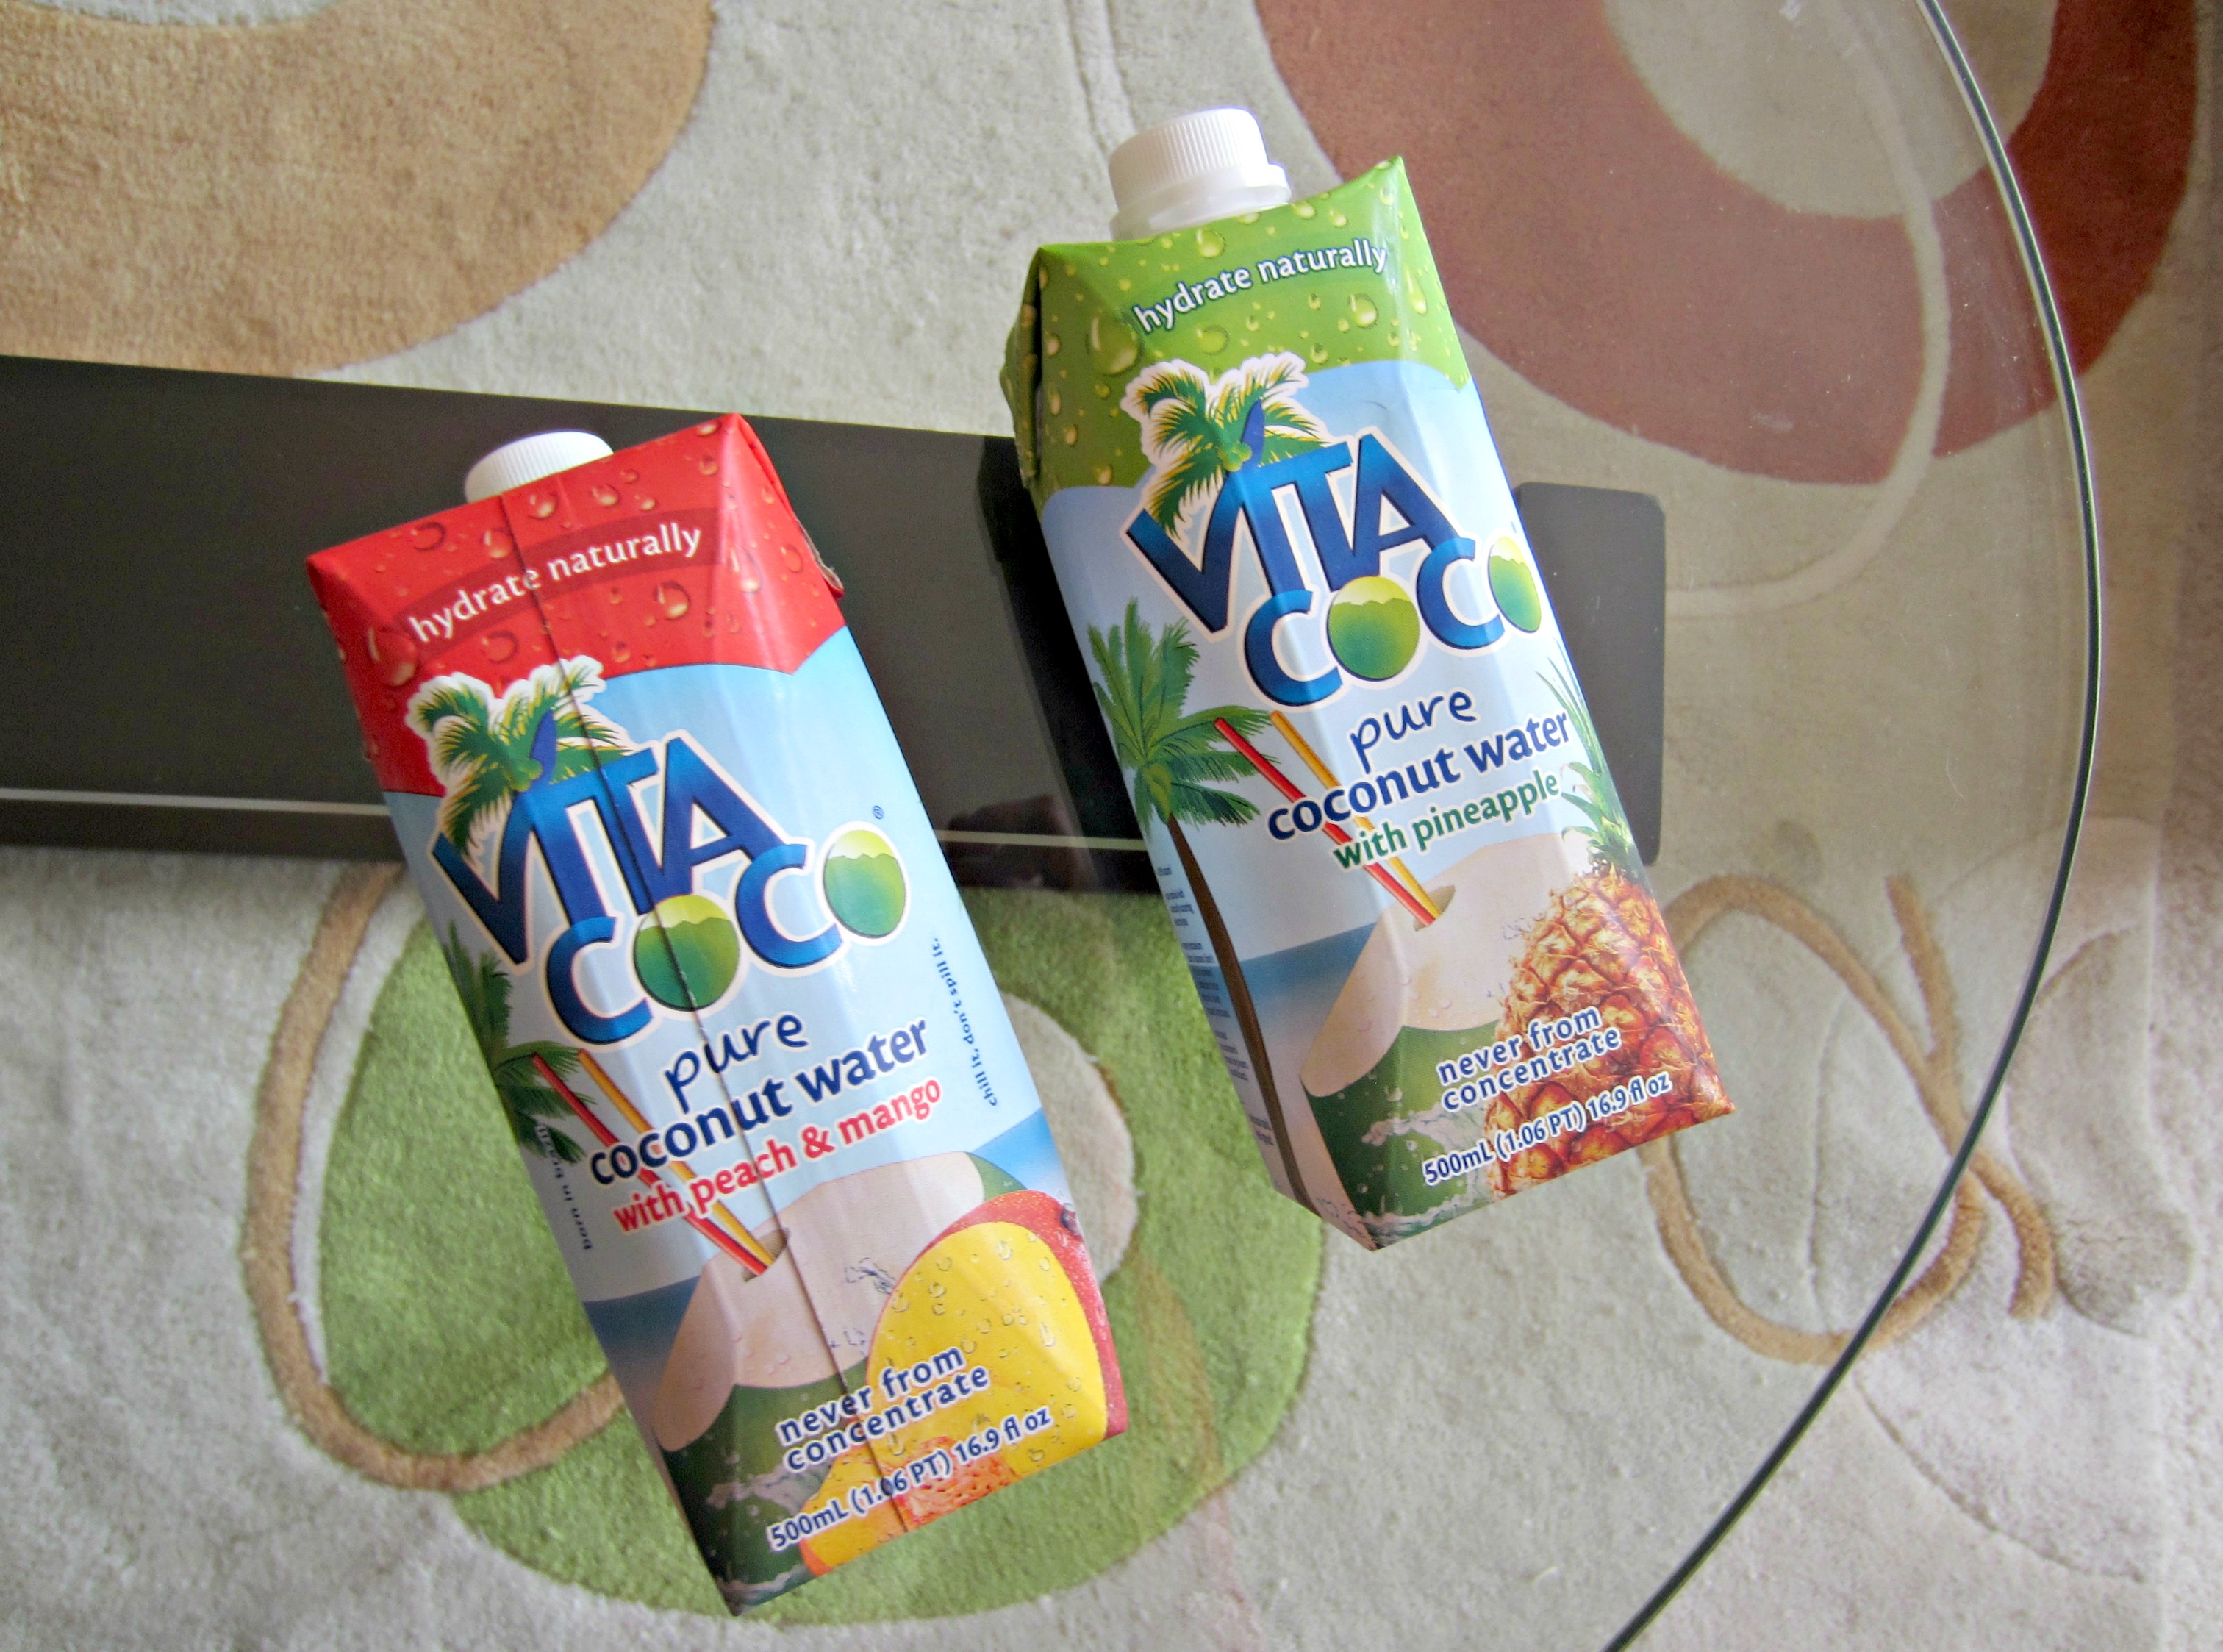 vitacoco flavored coconut water